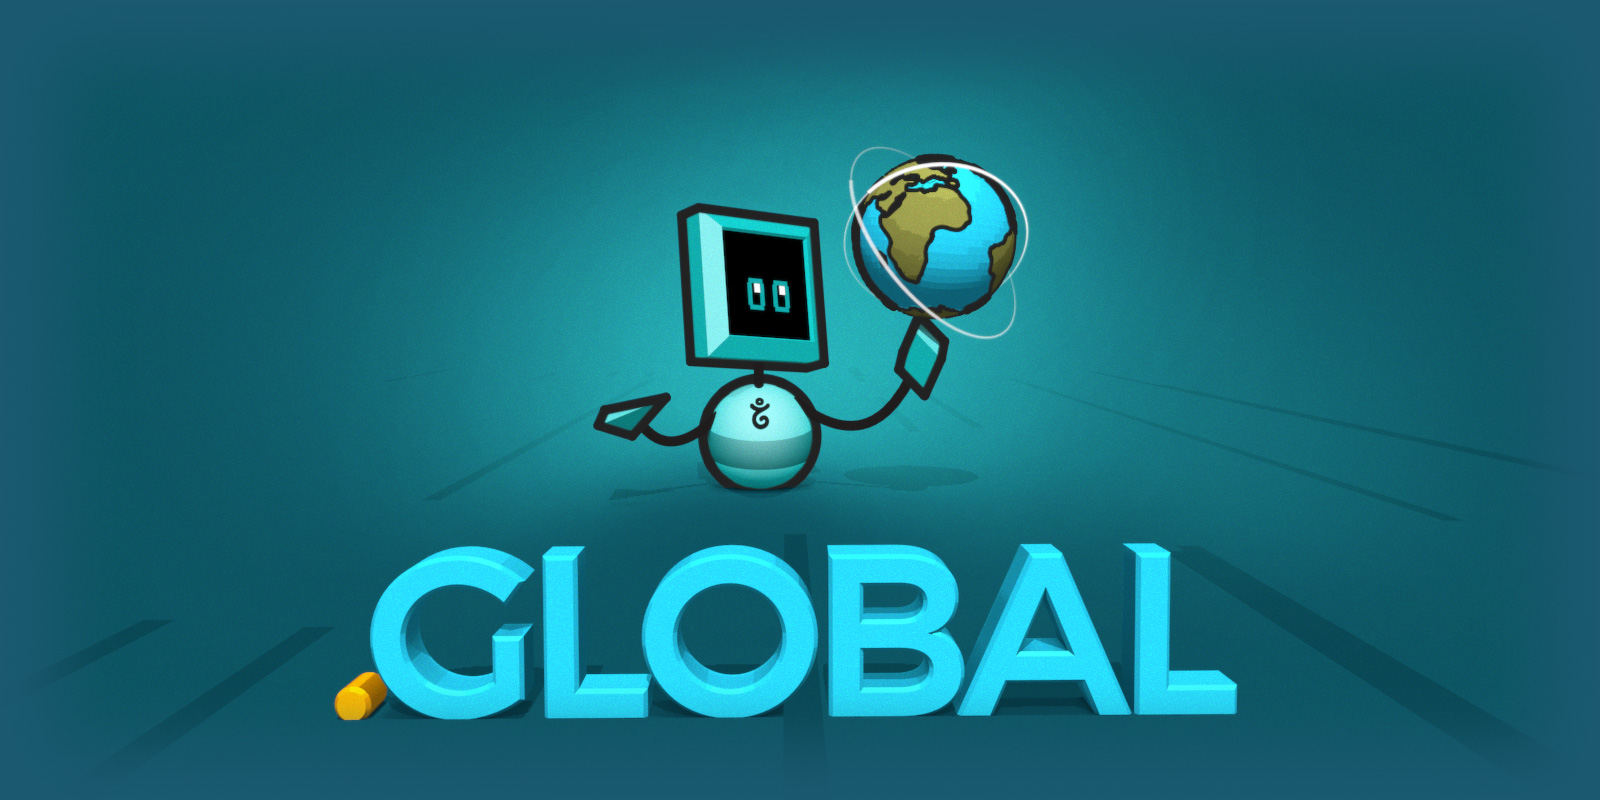 Take your website .global for ONLY $19.99 now!